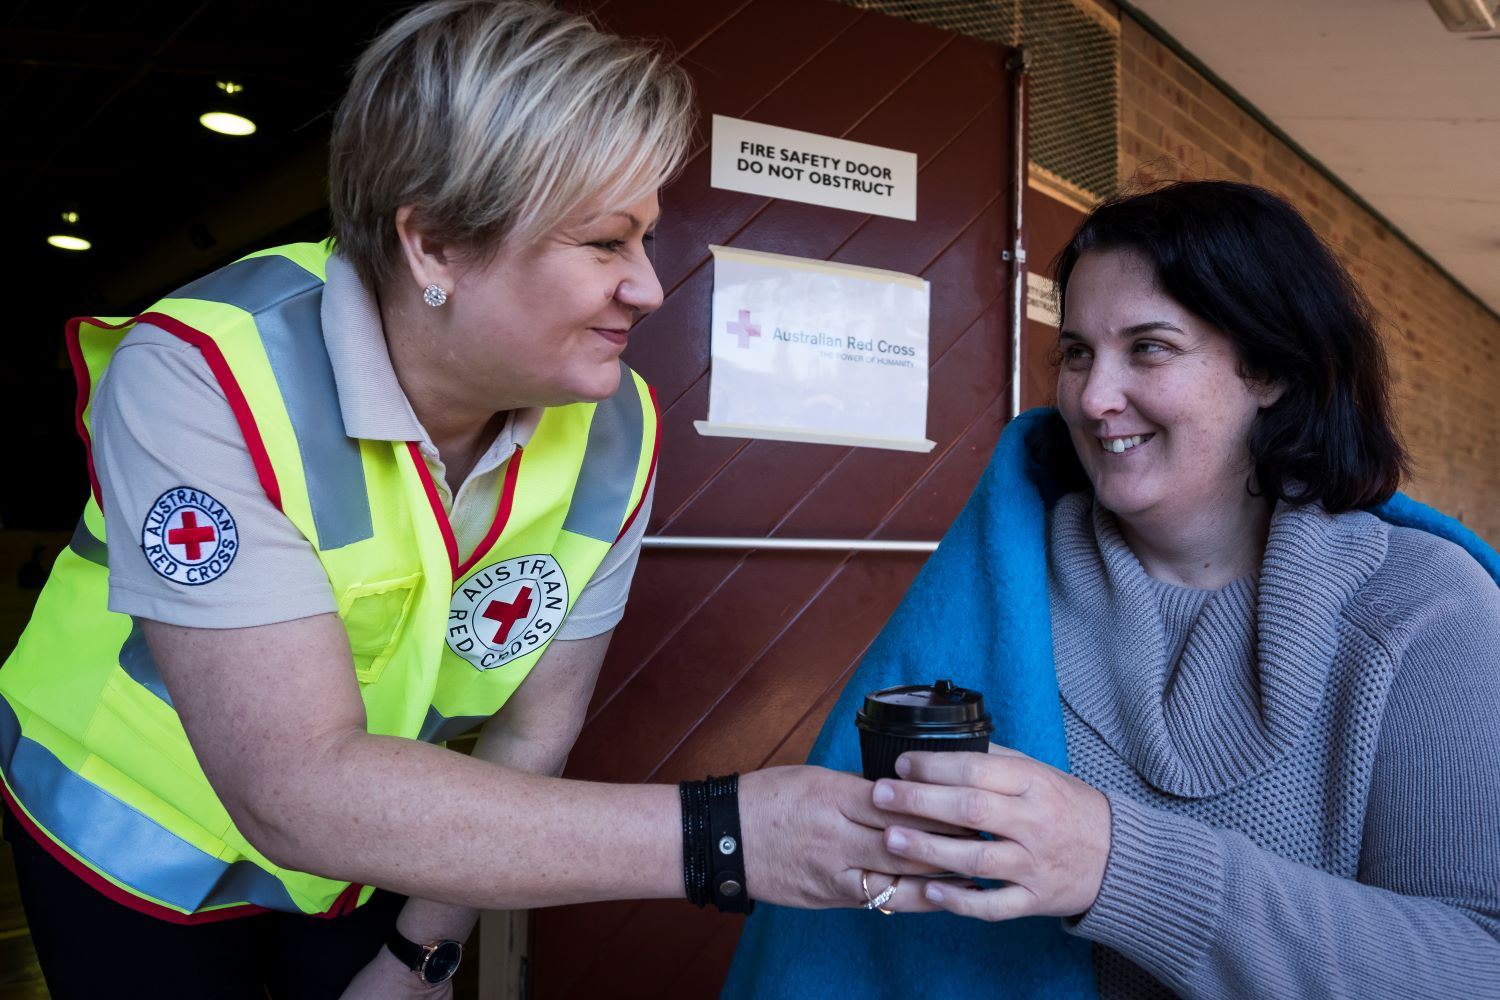 Australian Red Cross, Charity Gifts, Crisis Accommodation For People Who Need Urgent Assistance To Find Somewhere To Live